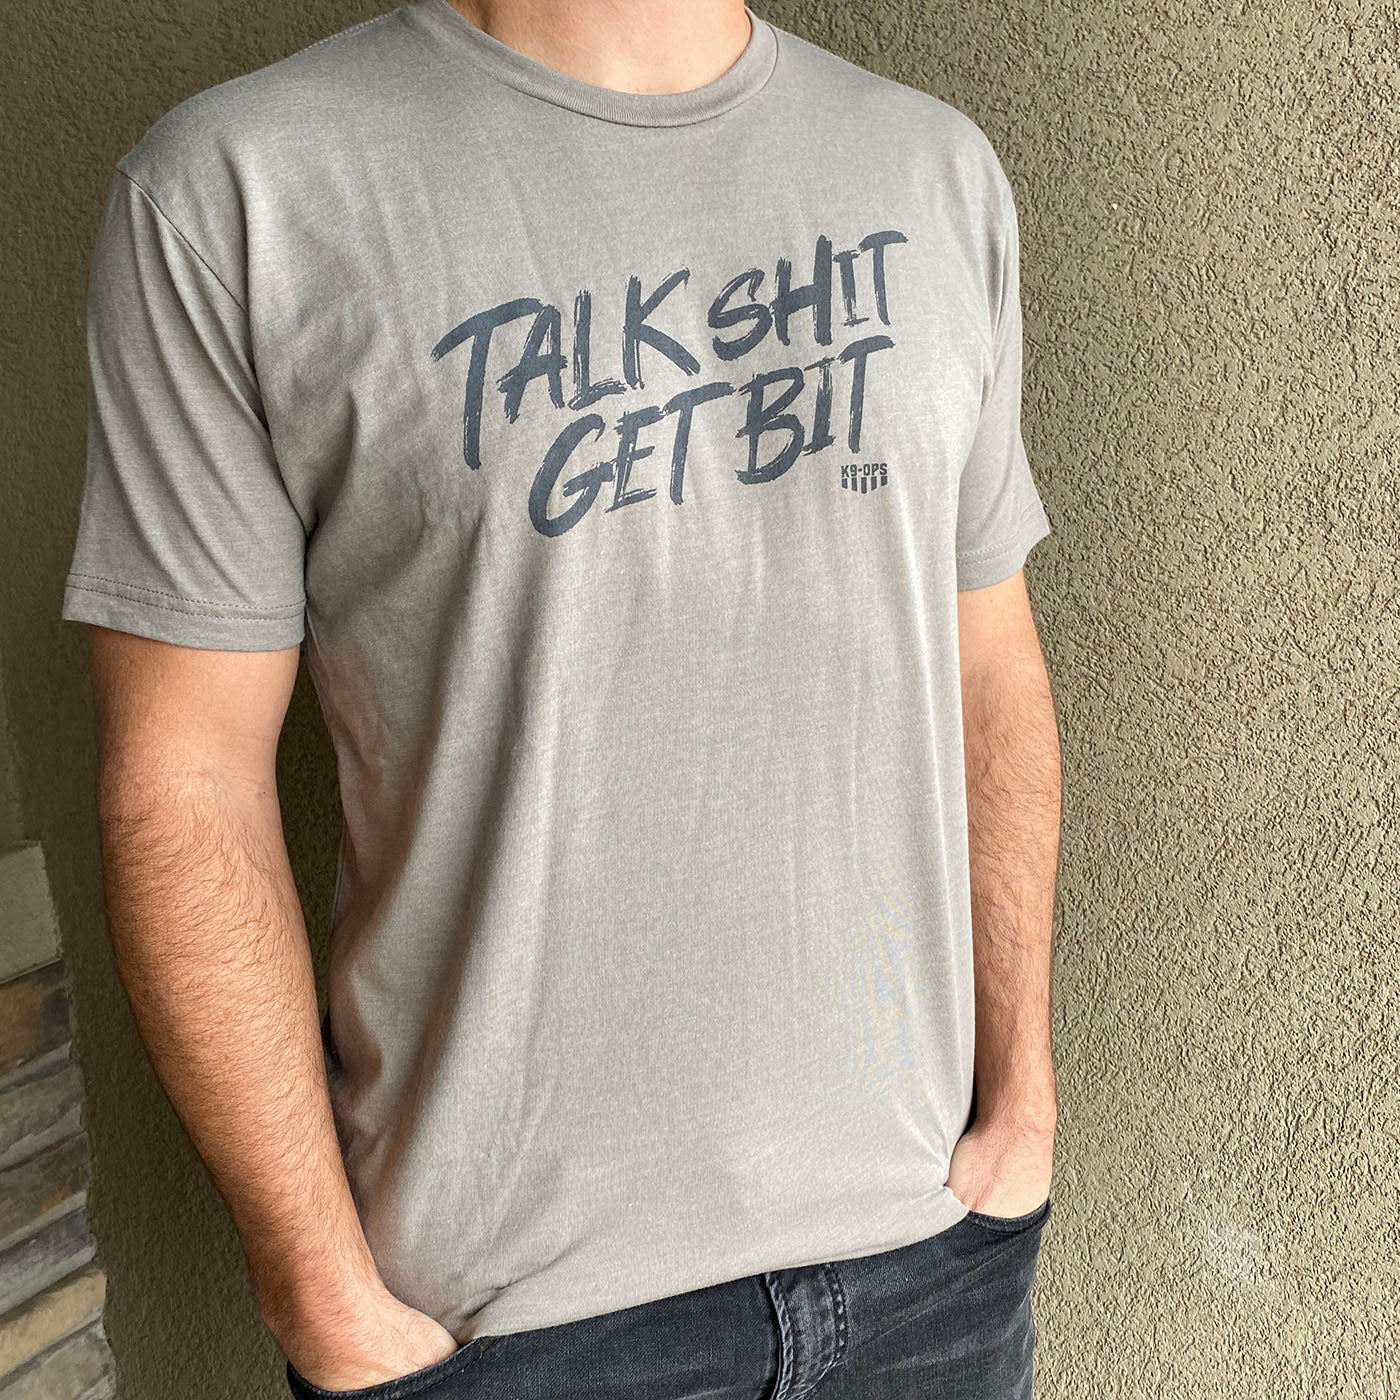 TALK SHIT GET BIT - Mens